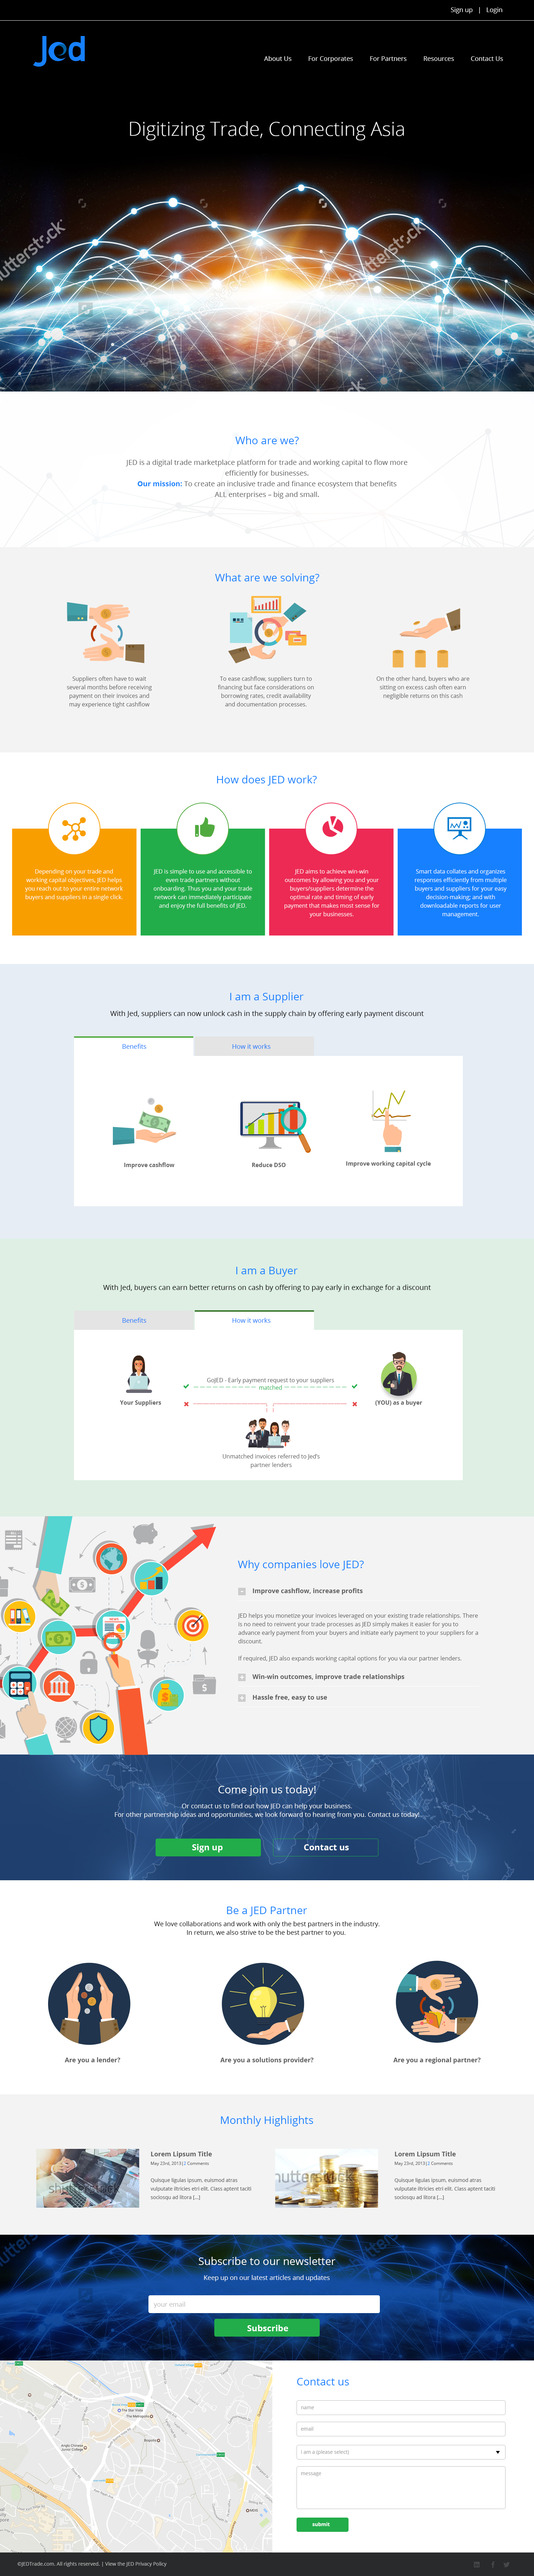 Jed Trade Website And Name Card Design Serene Soh